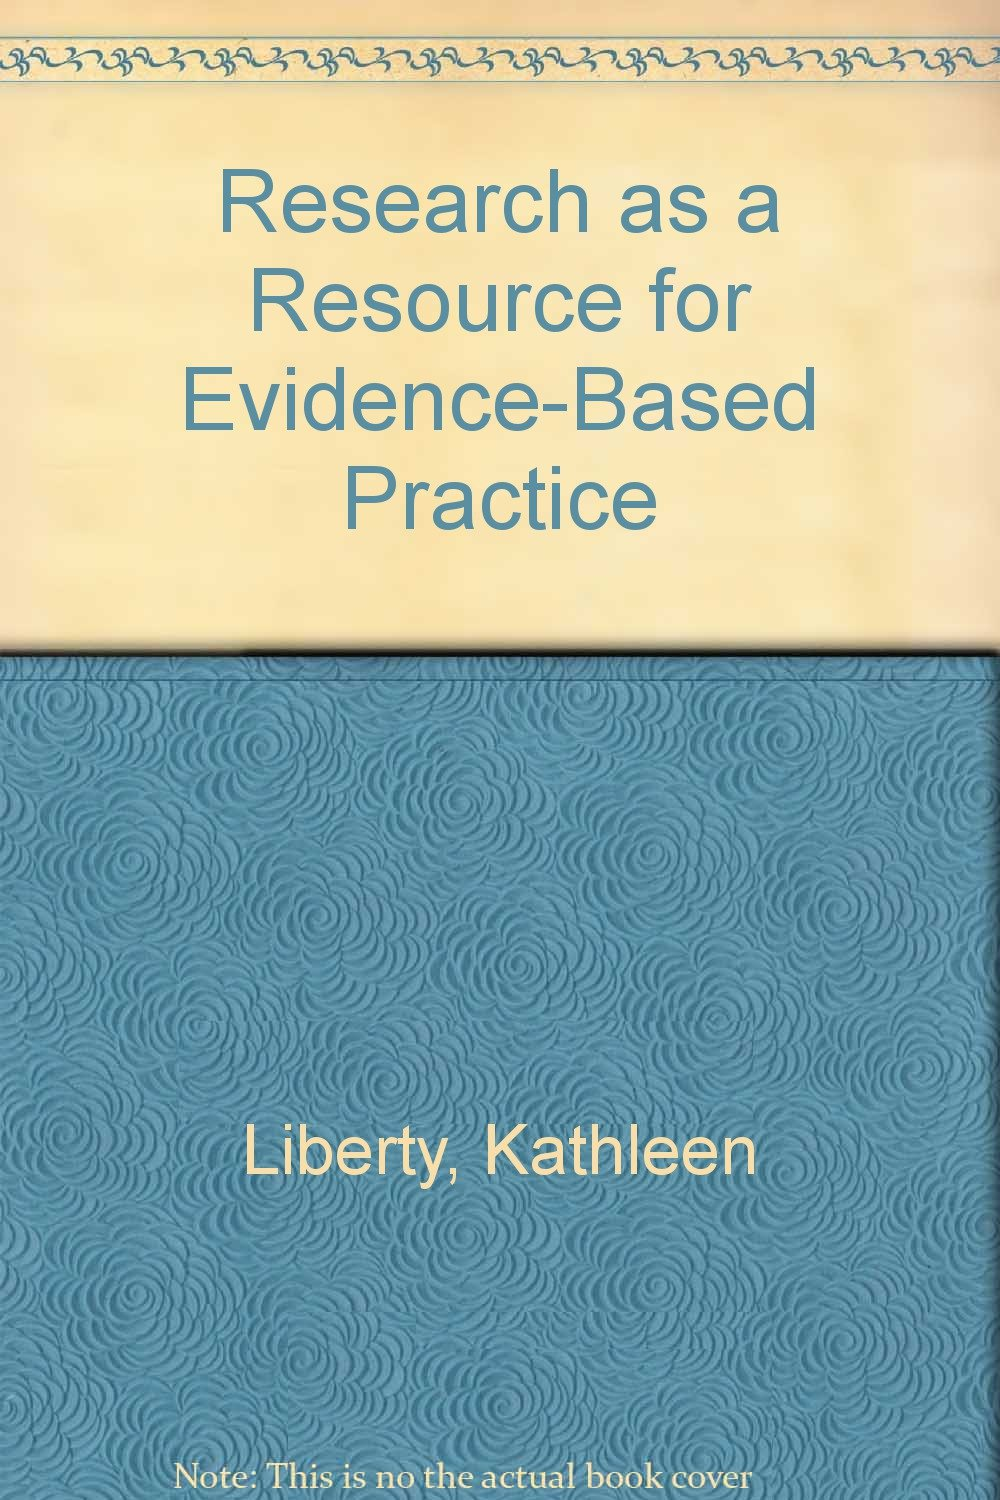 Research as a Resource for Evidence-Based Practice pdf